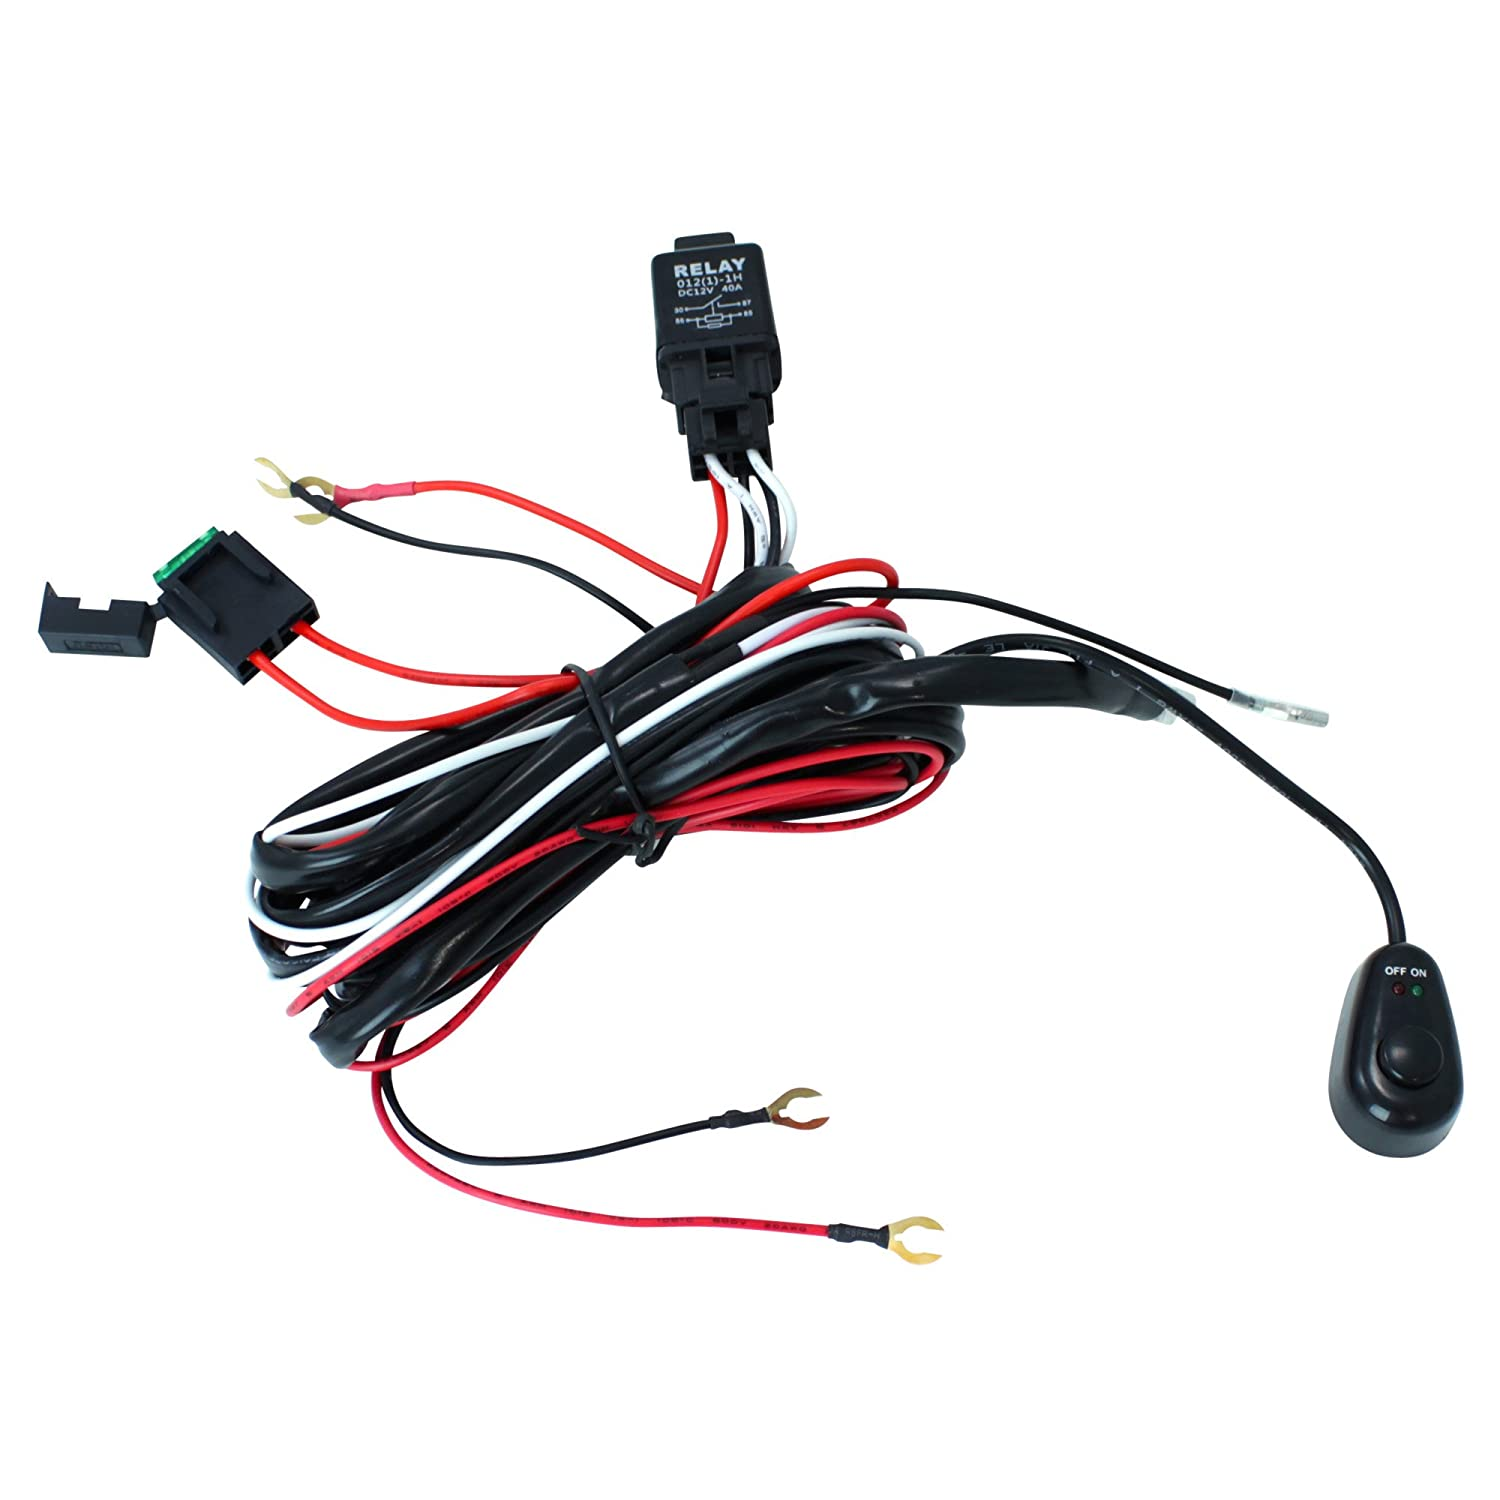 71ONjFALDCL._SL1500_ amazon com dt moto™ off road atv jeep led light bar wiring Dt Moto CA at n-0.co